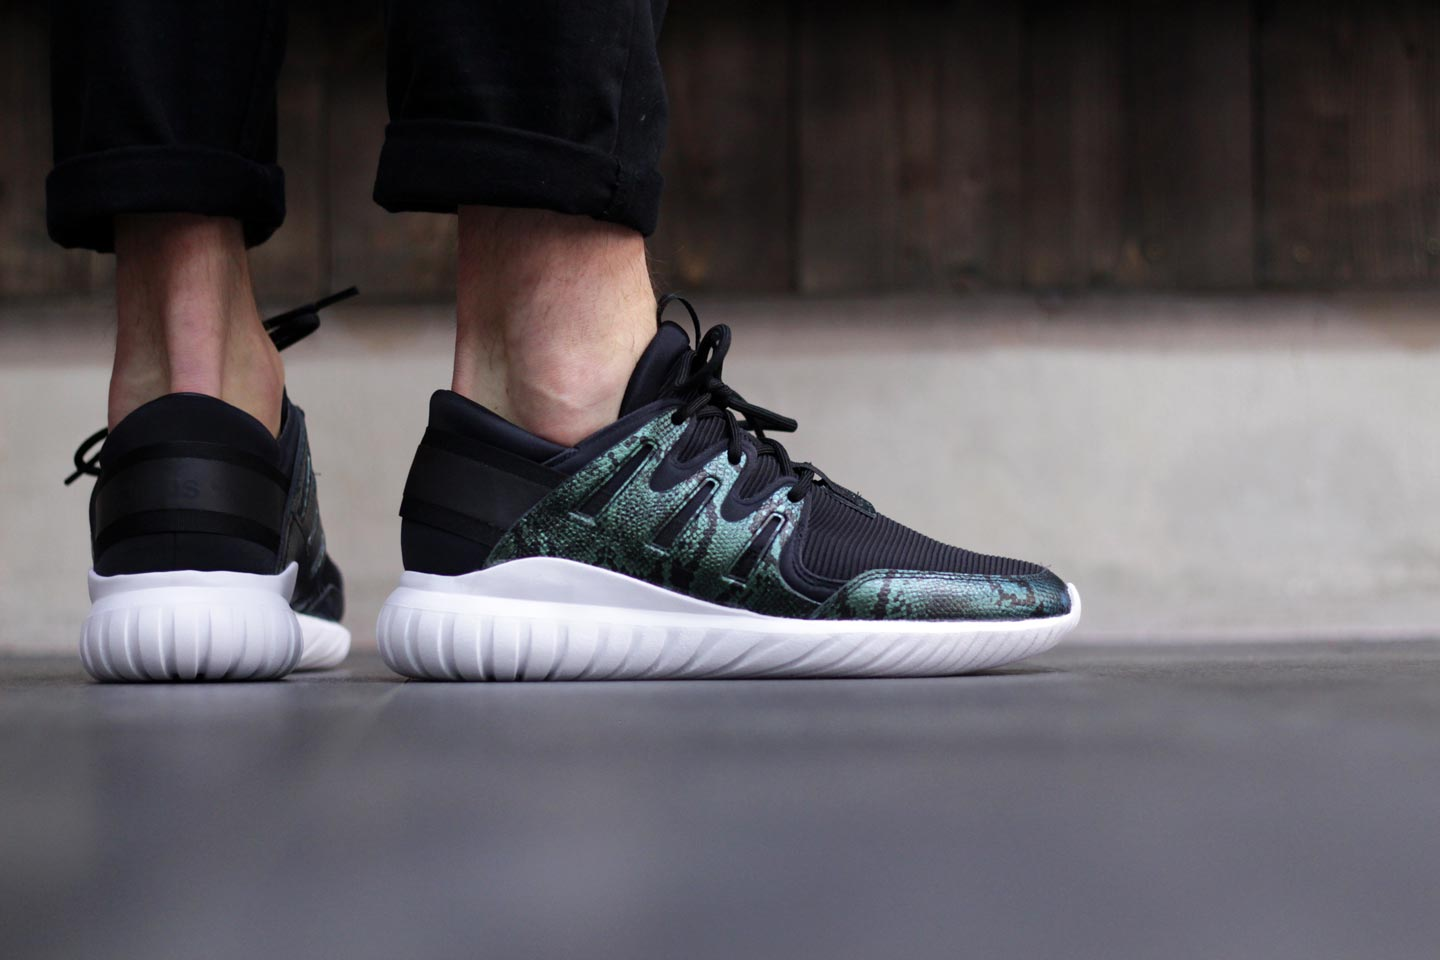 Hot sale 2017 Adidas Men Tubular Nova PK Primeknit